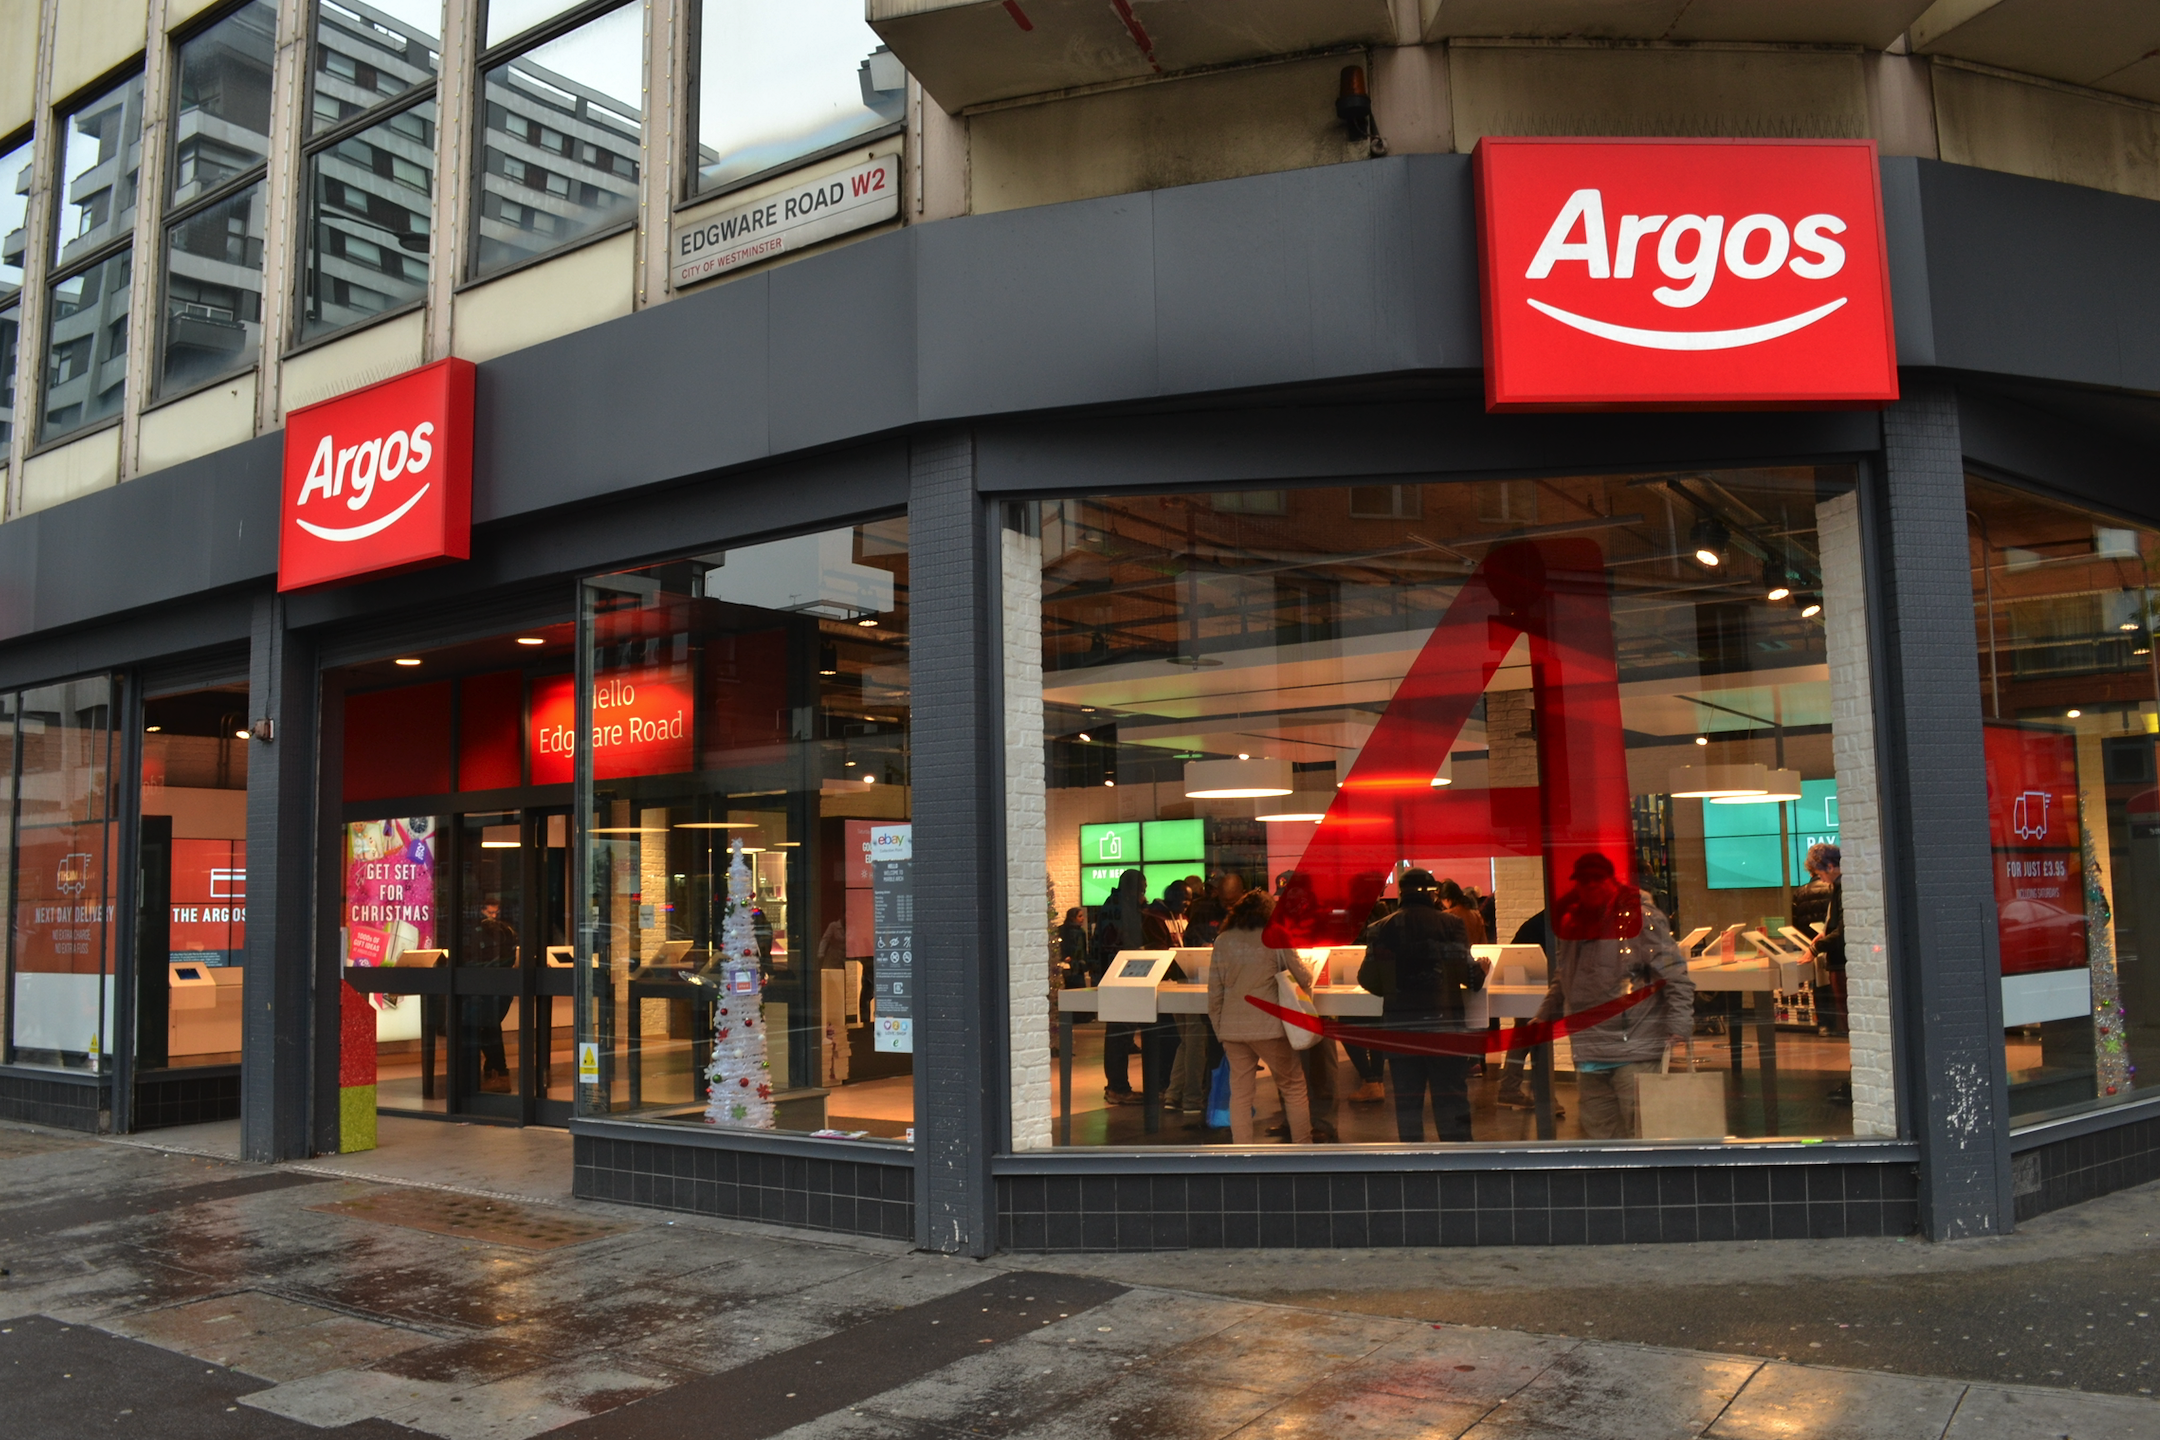 Sainsbury's to close 420 Argos stores